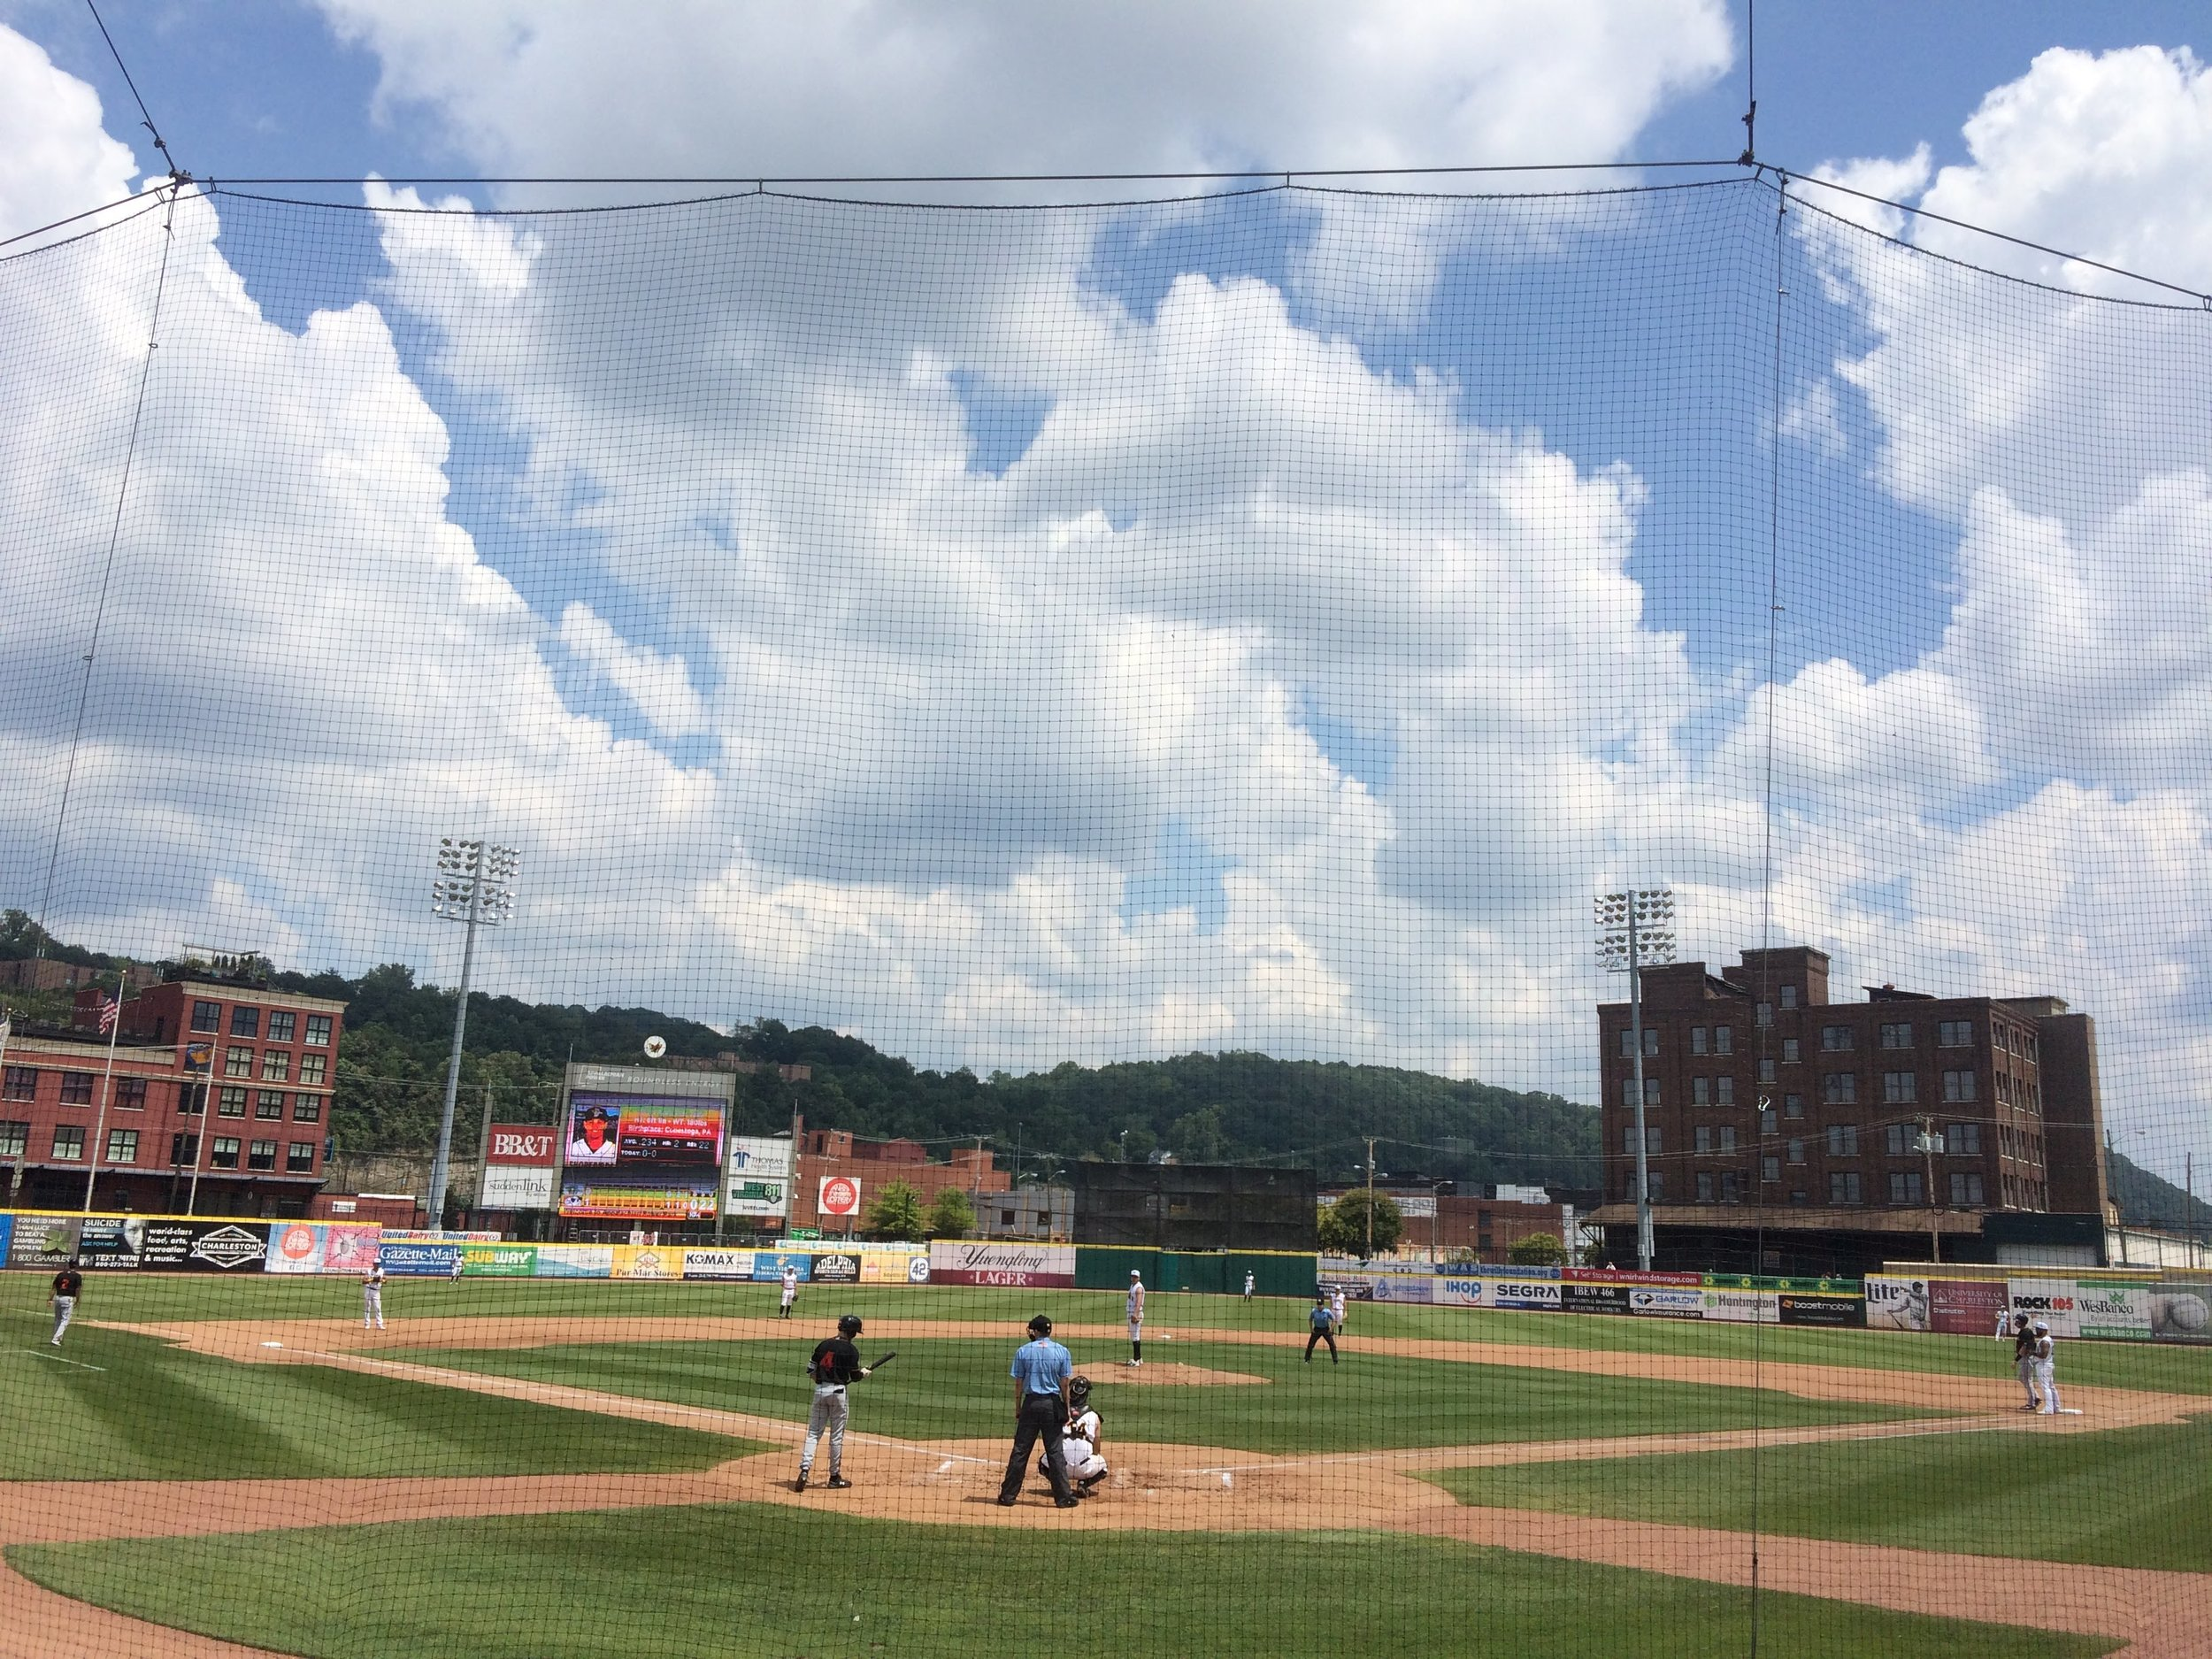 So cool! A minor league ball game between the West Virginia Power and Delmarva Shorebirds. Foul balls dropping everywhere.